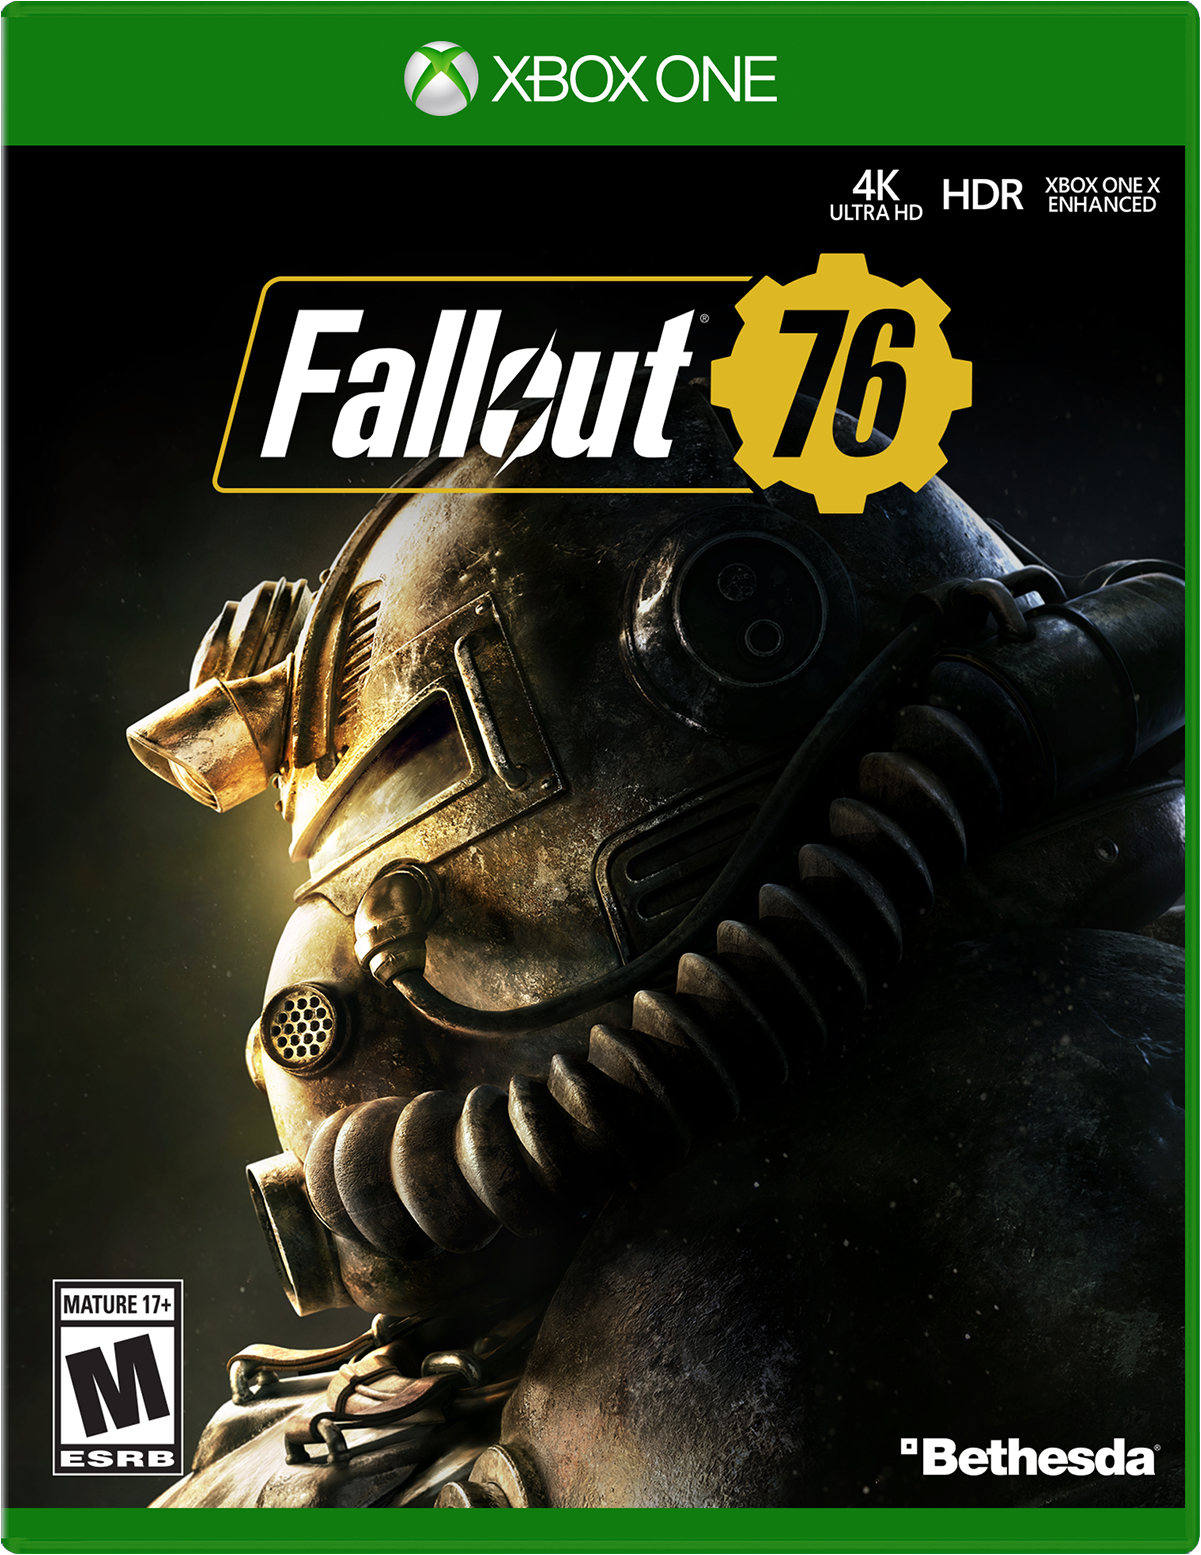 Picture of the box of Fallout 76